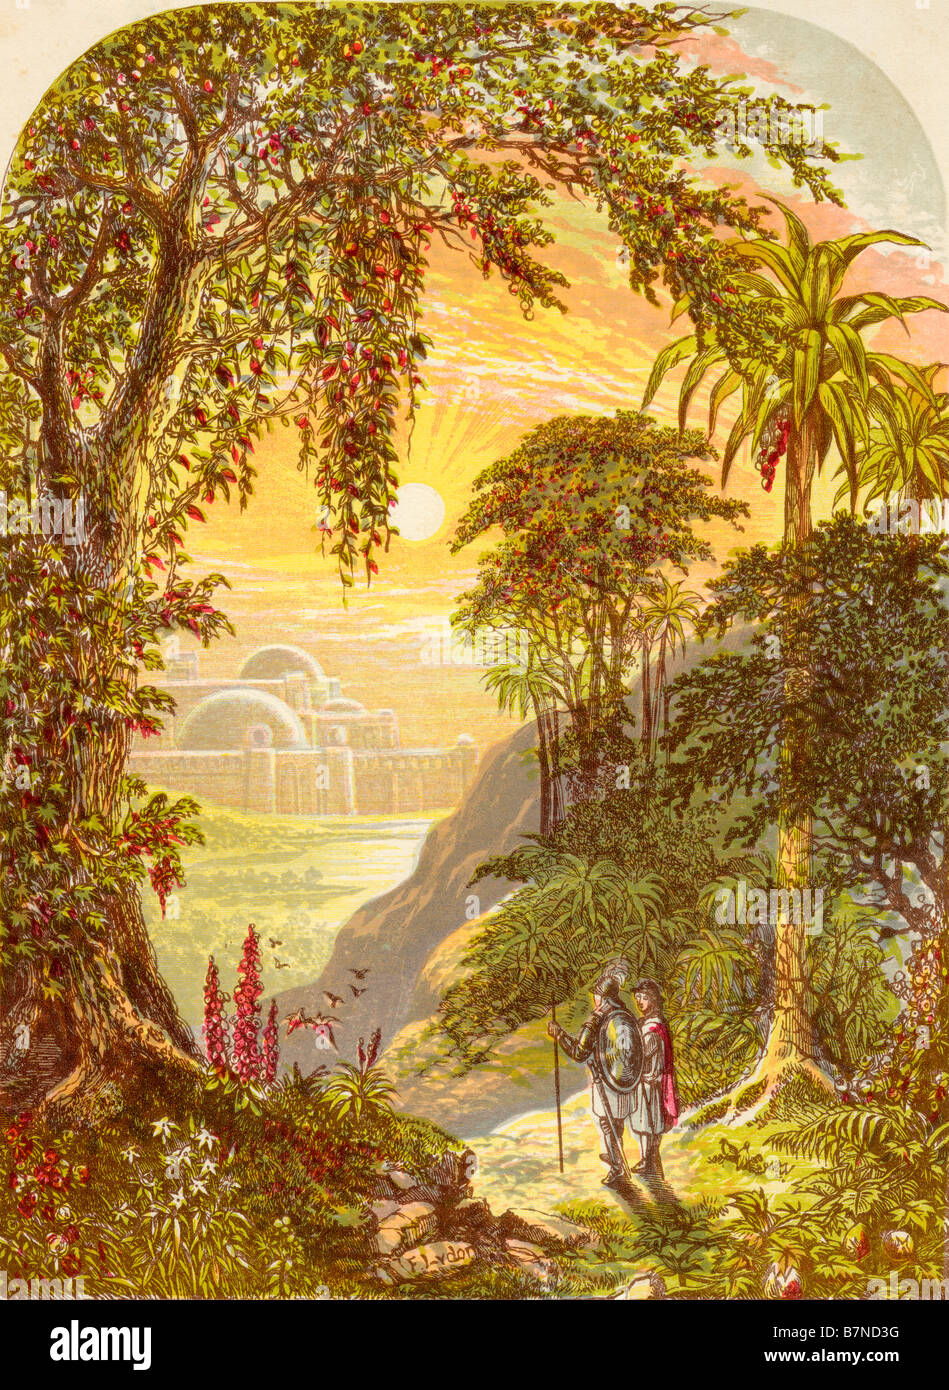 Christian and Hopeful in the land of Beulah From the book The Pilgrims Progress - Stock Image